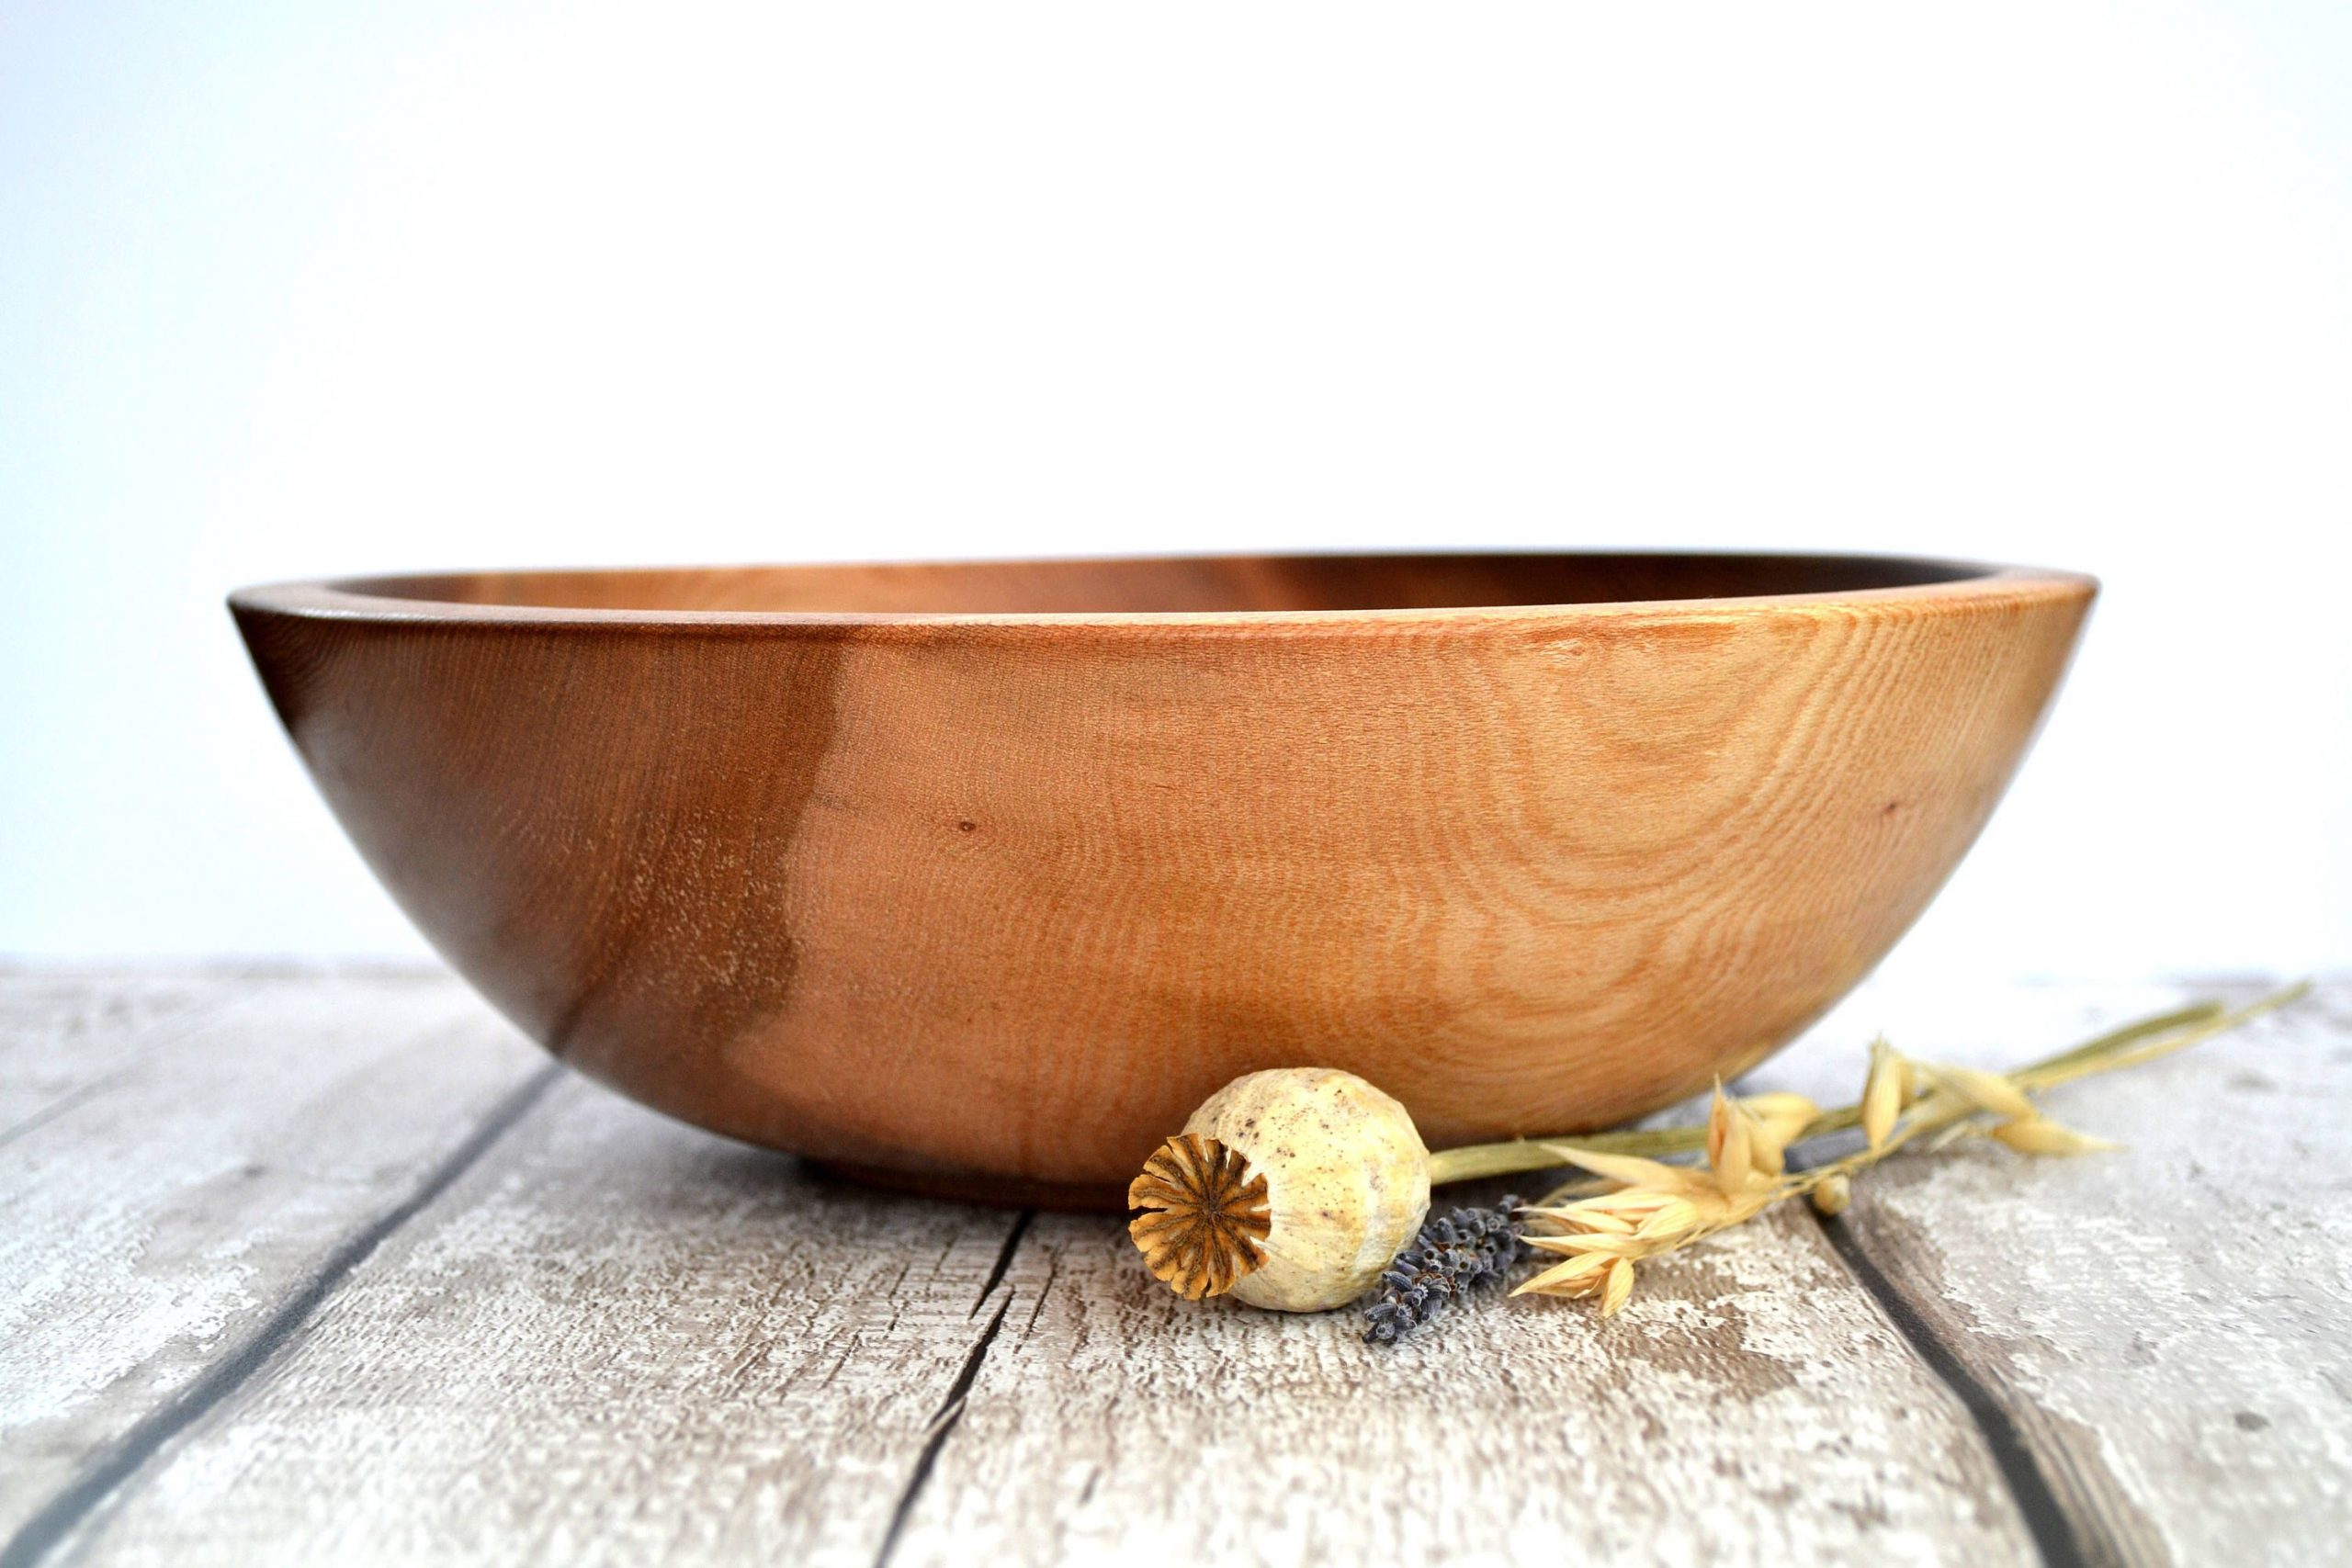 Park Art|My WordPress Blog_How To Make A Wooden Bowl By Hand